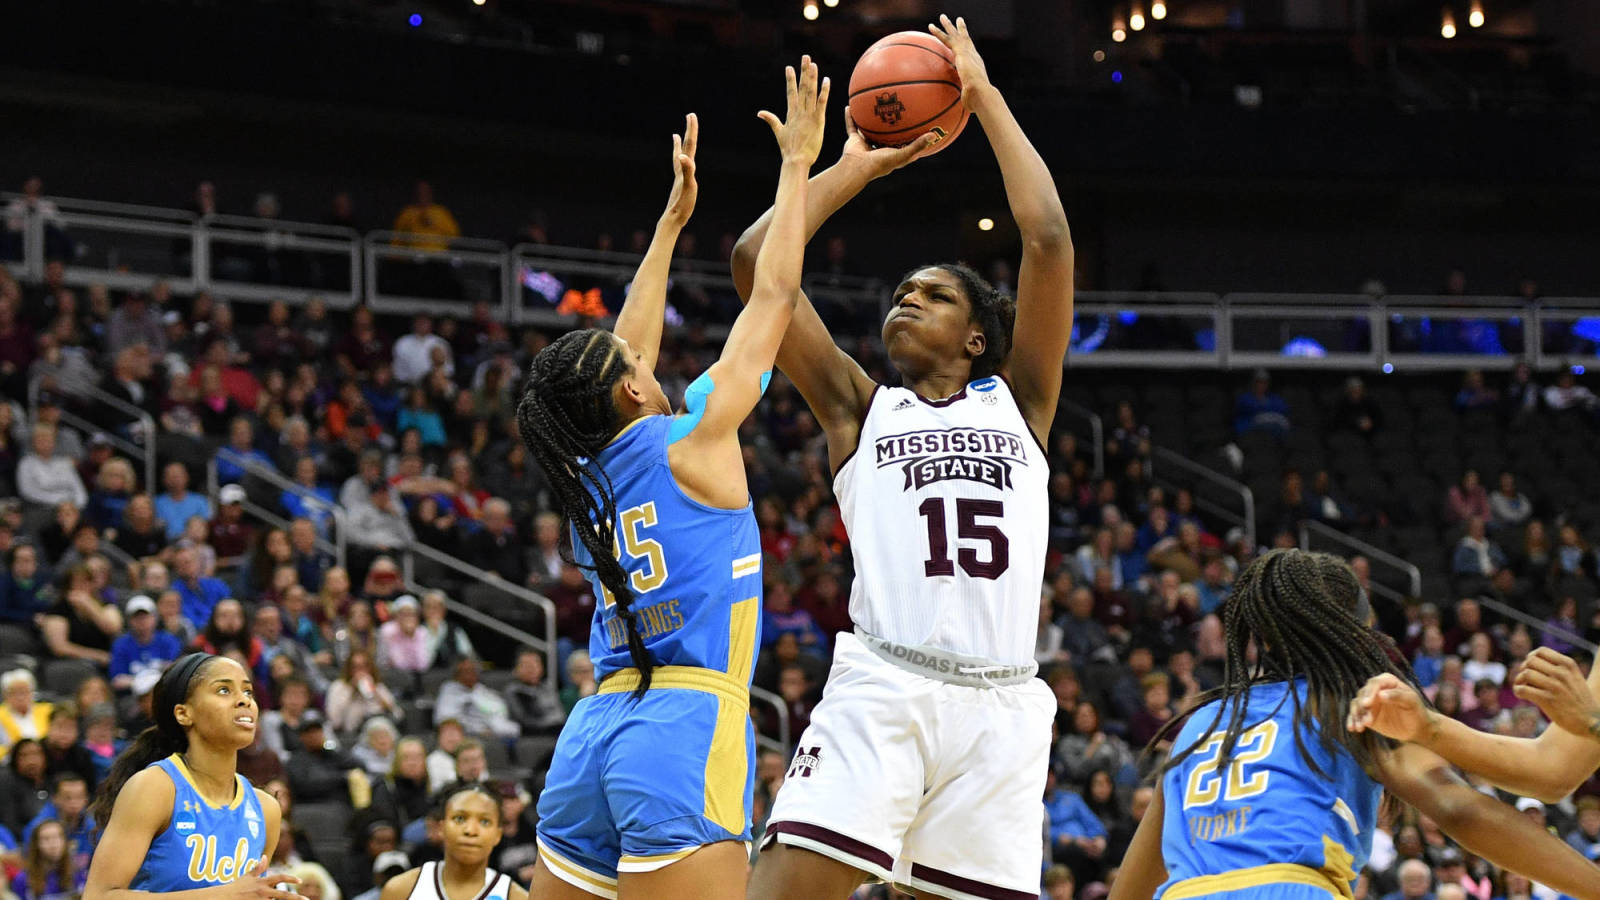 Mississippi State 73, Louisville 63, women's college basketball final